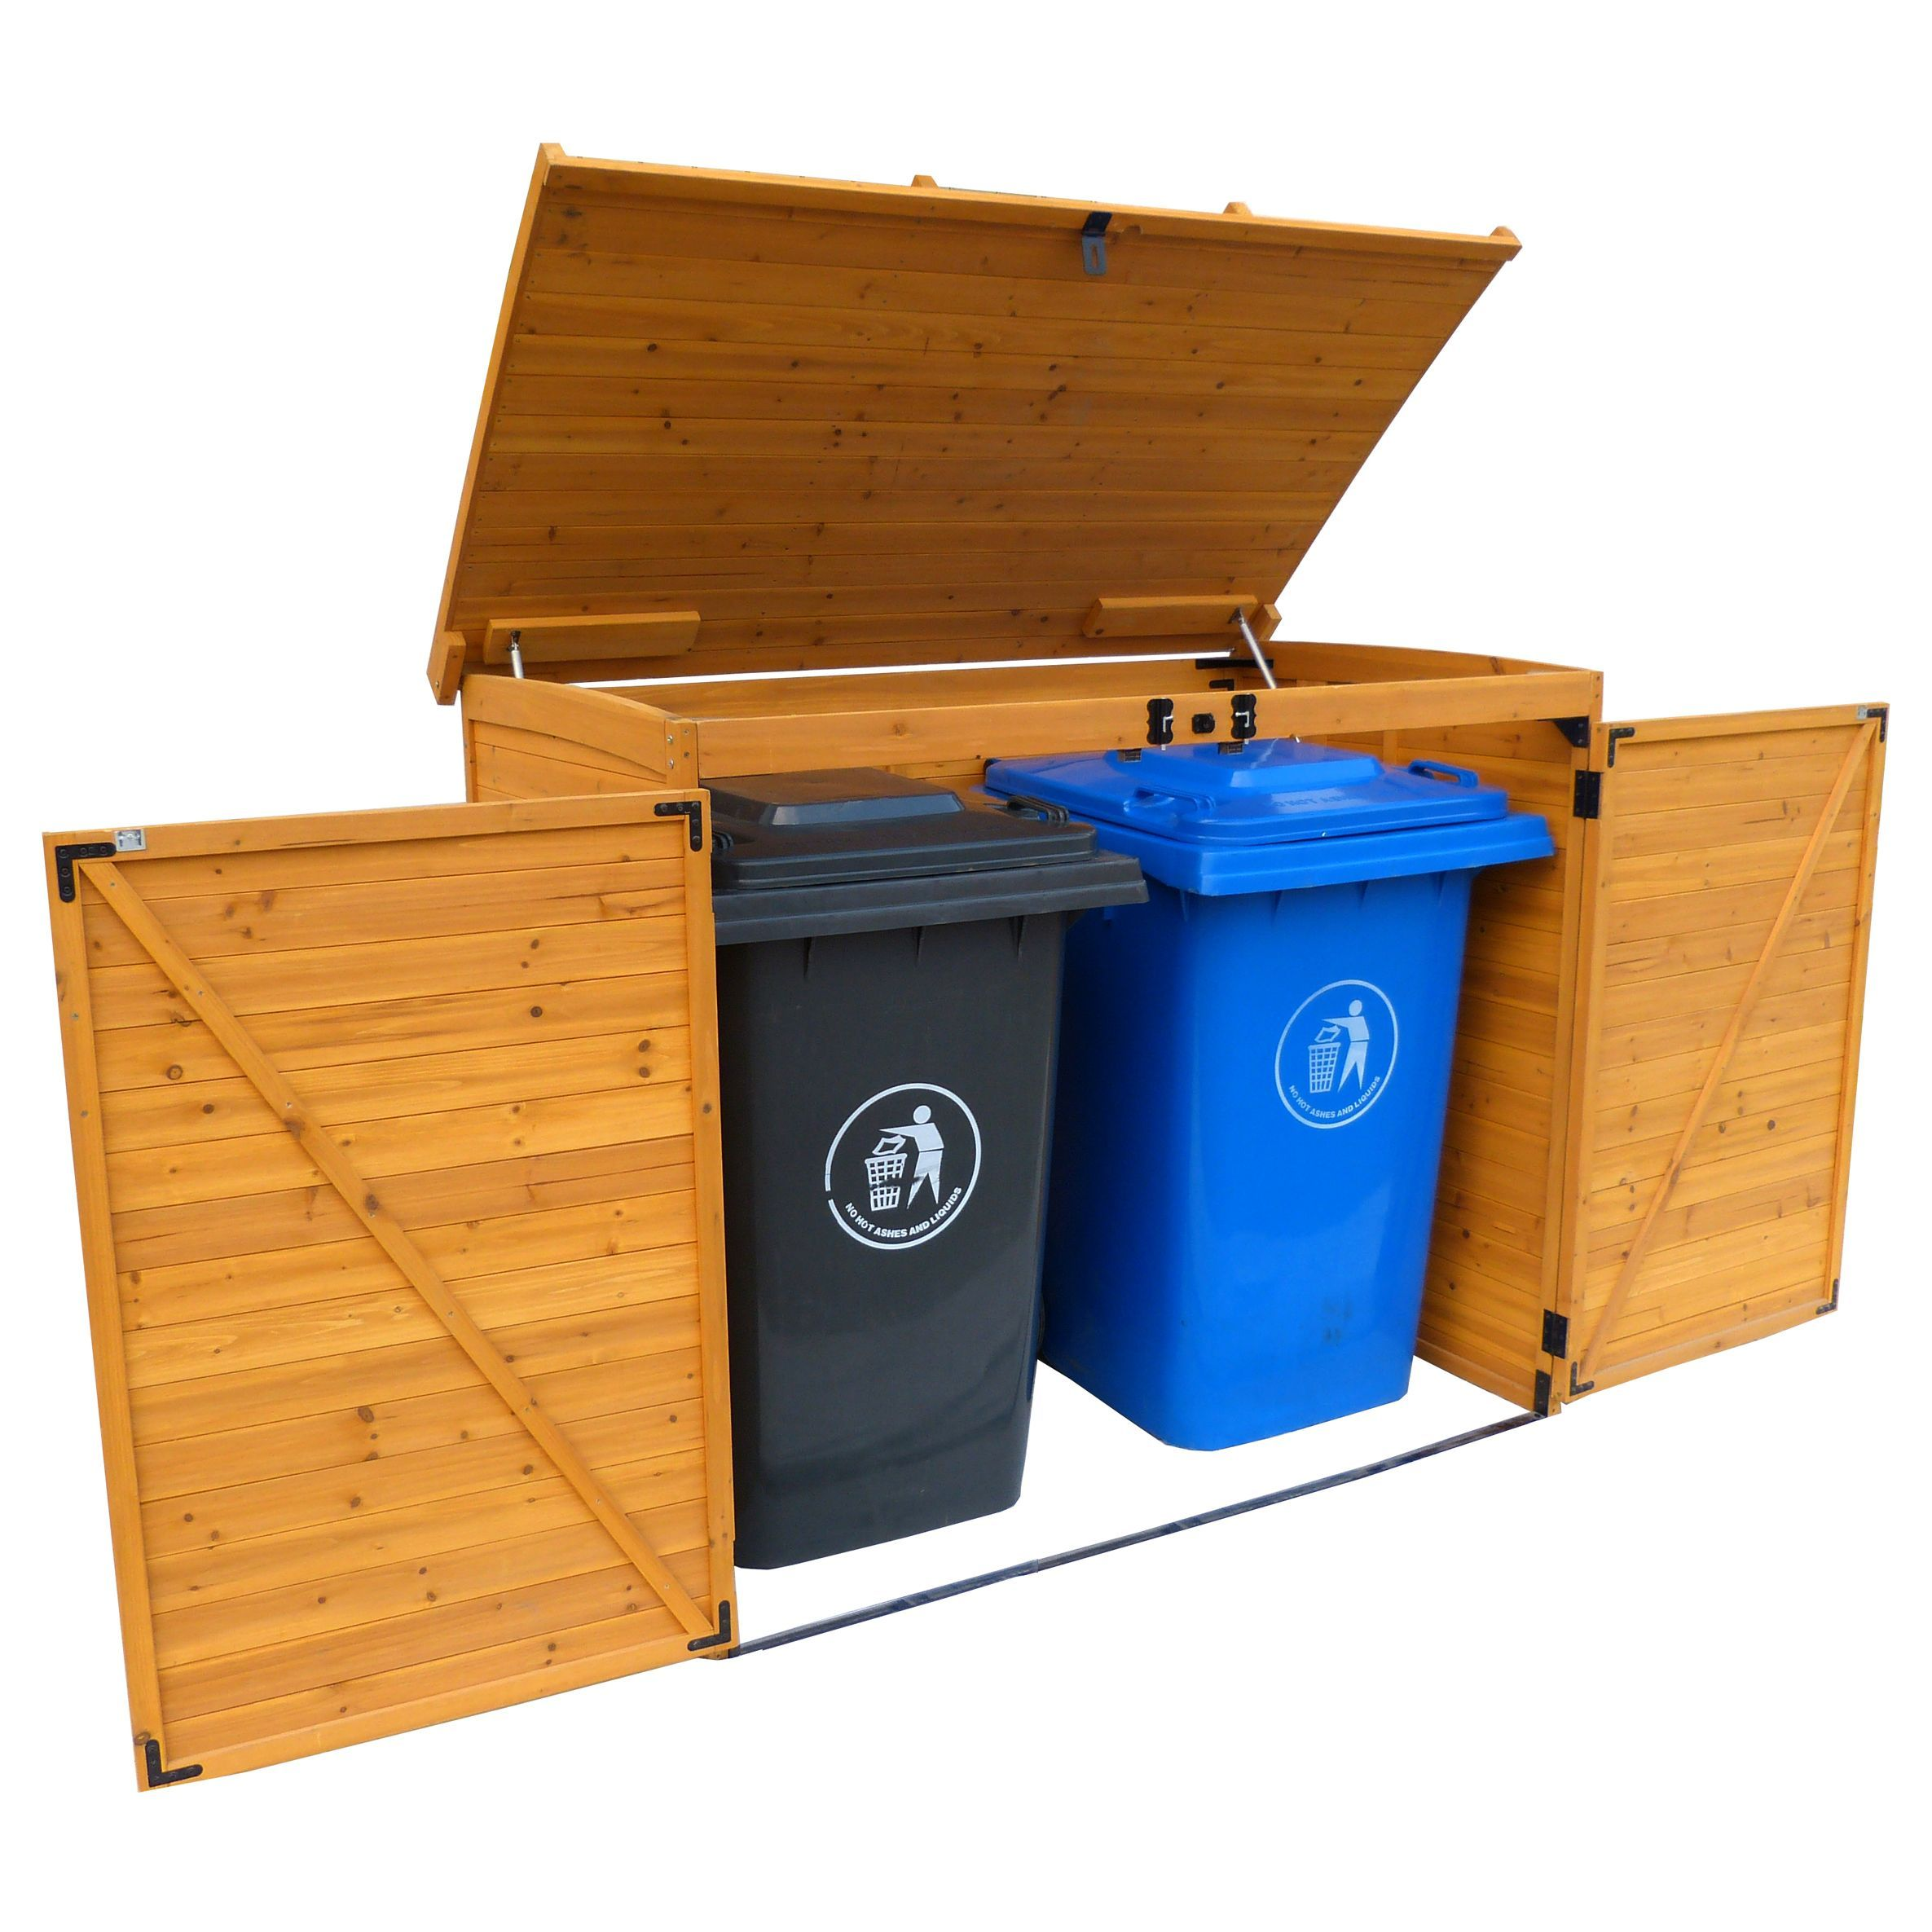 The large horizontal refuse outdoor storage shed is designed to